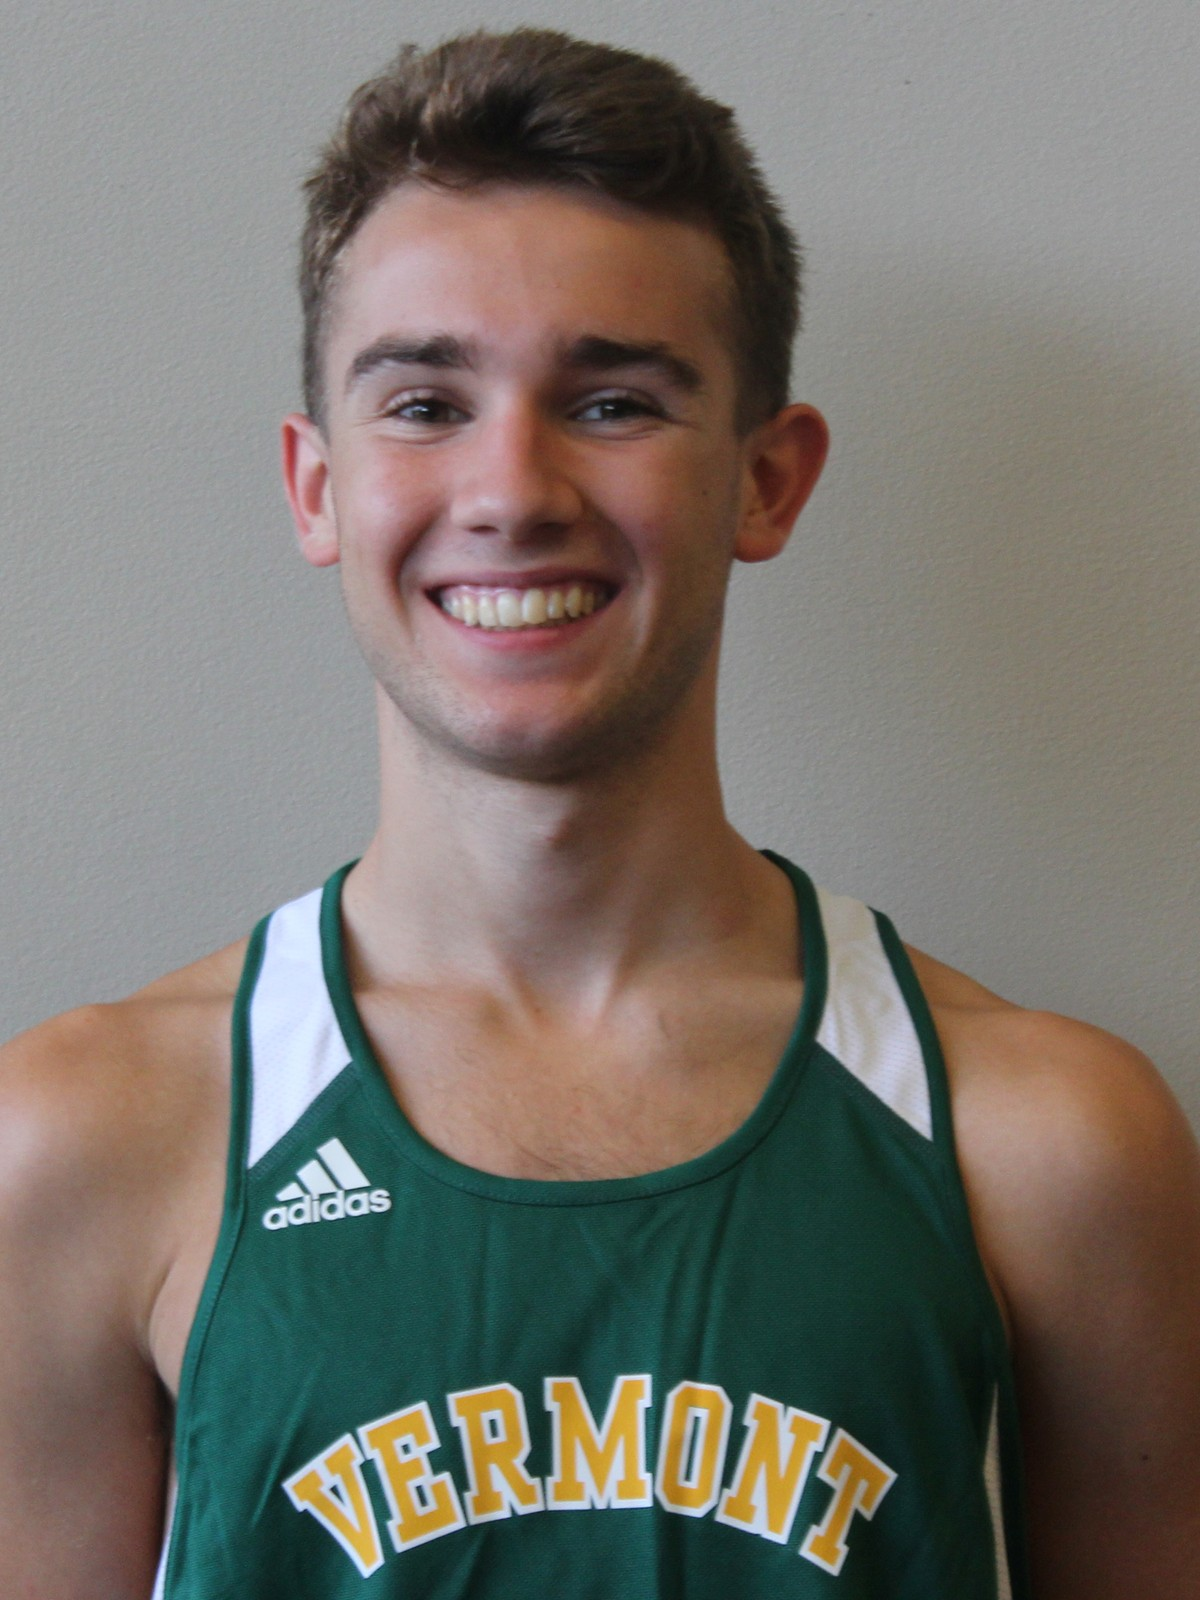 Logan Whorton Cross Country University Of Vermont Athletics